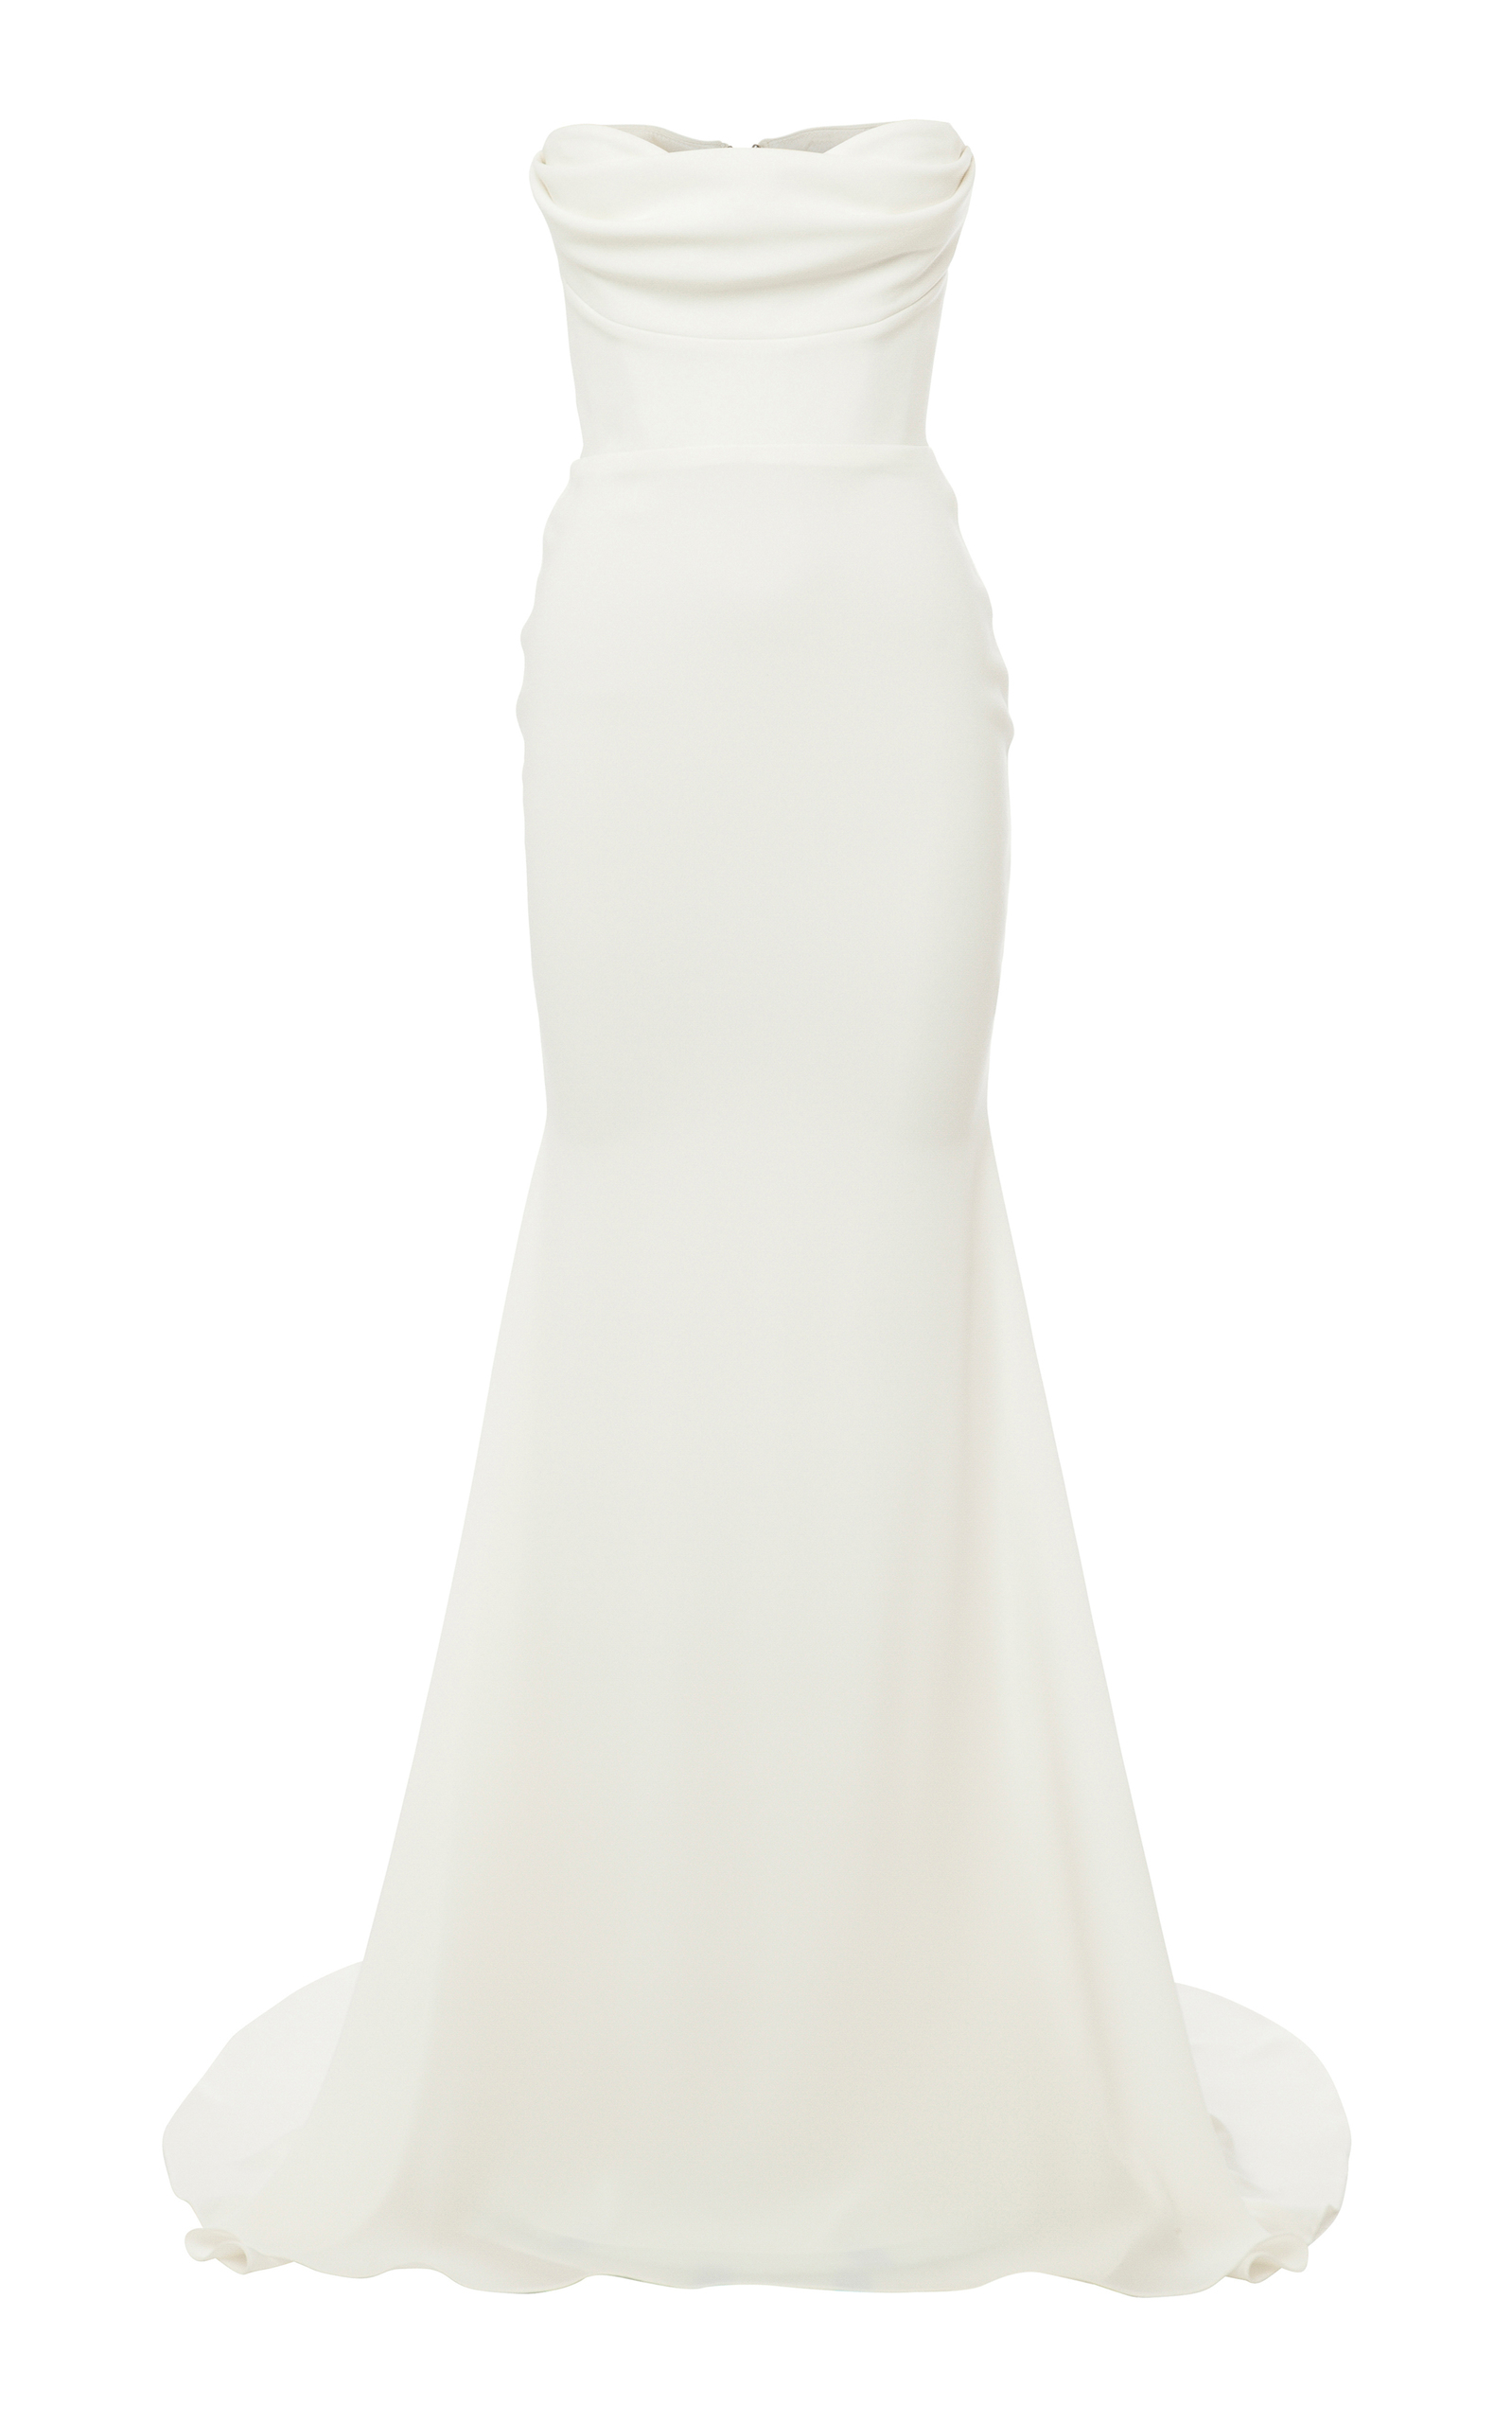 SALE] SLOANE gown by ALEX PERRY #D262 | Ganache Boutique